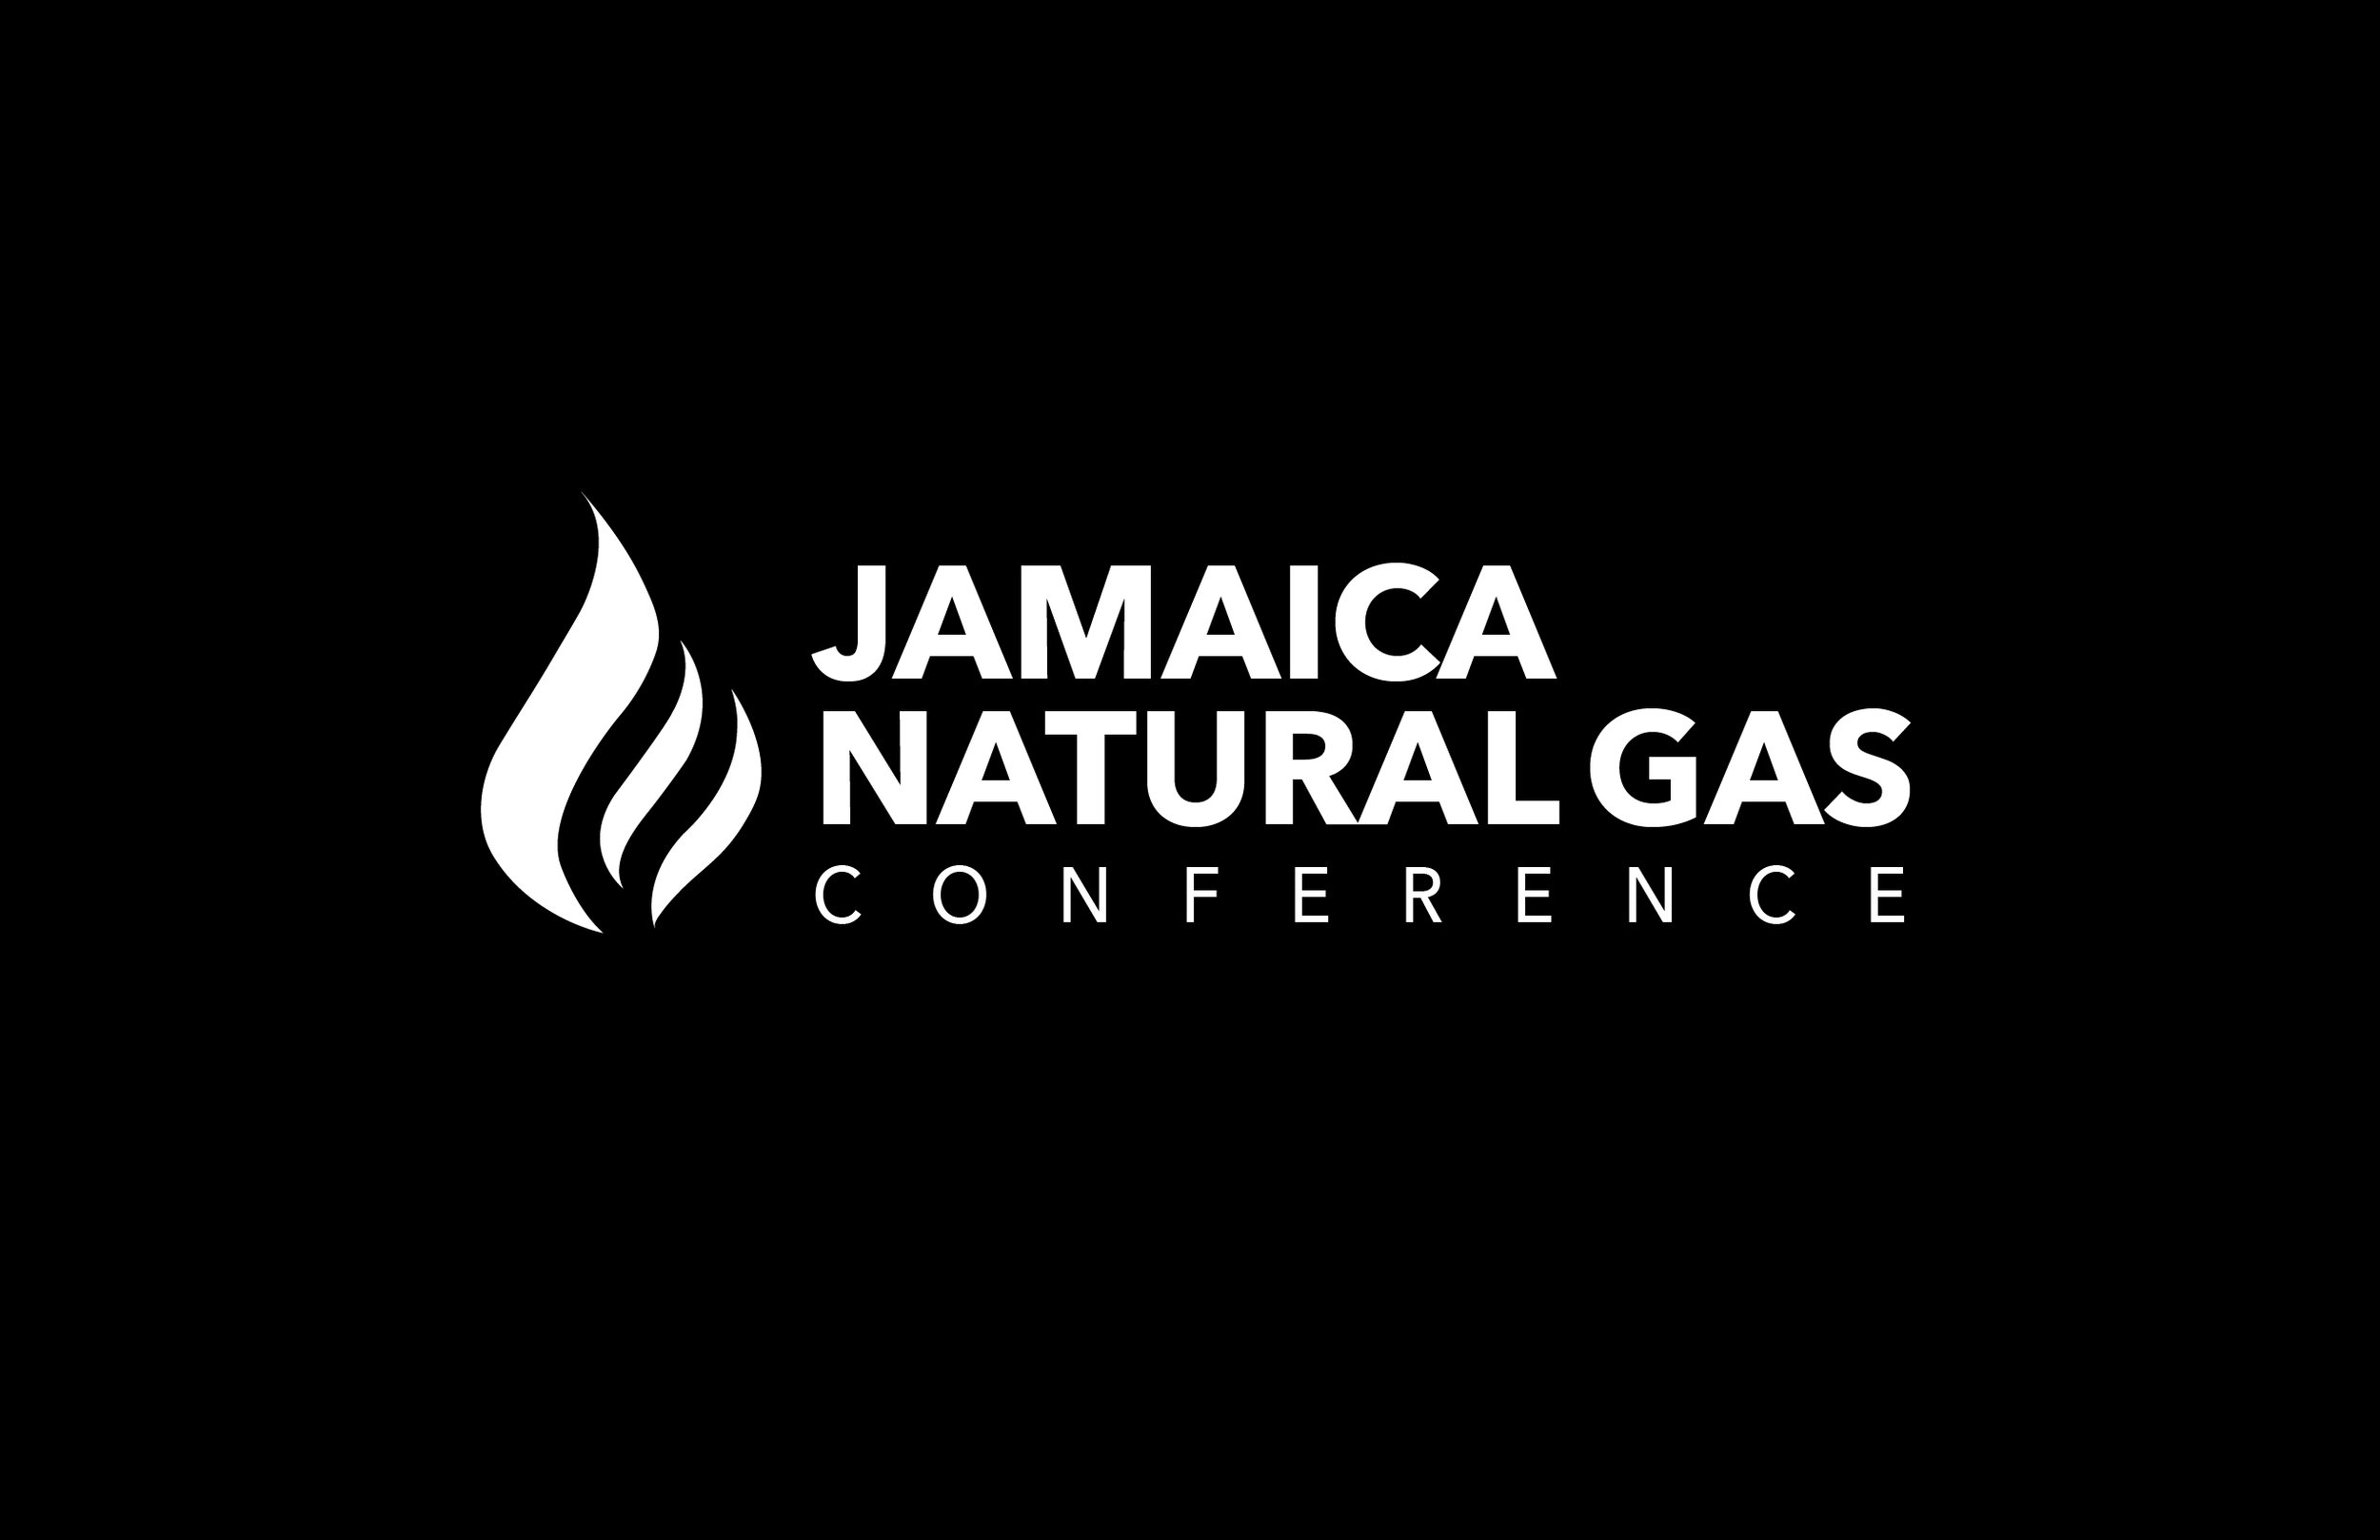 Jamaica Natural Gas conference logo-02.jpg